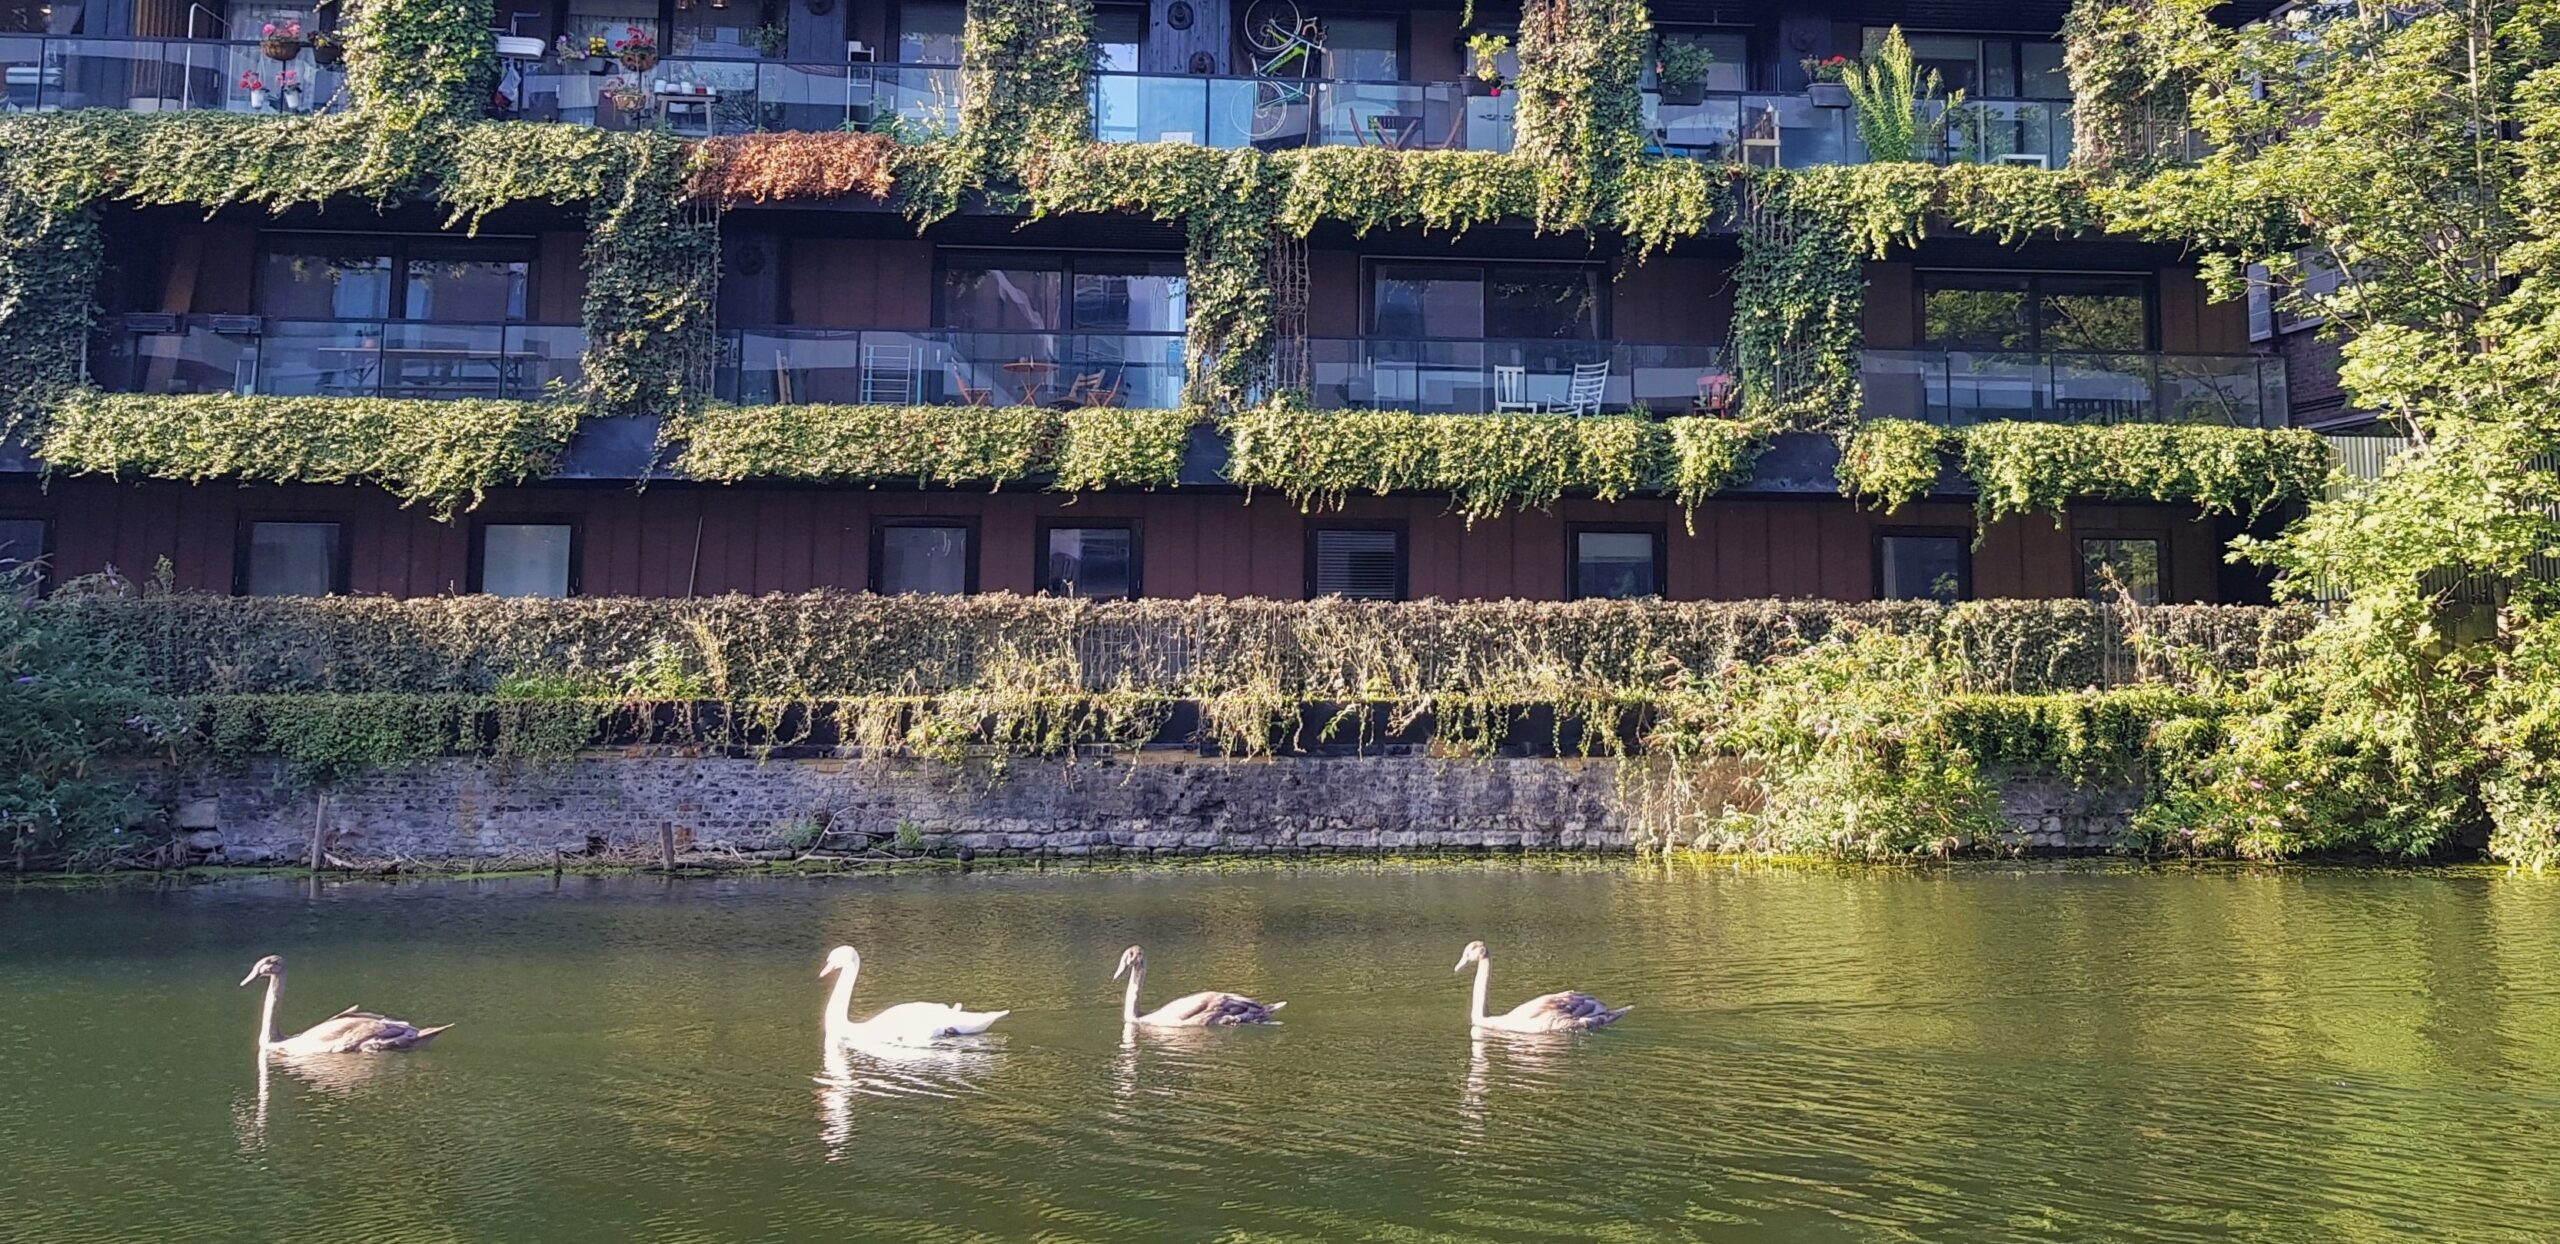 Swans gliding past a building with a green wall on the canal